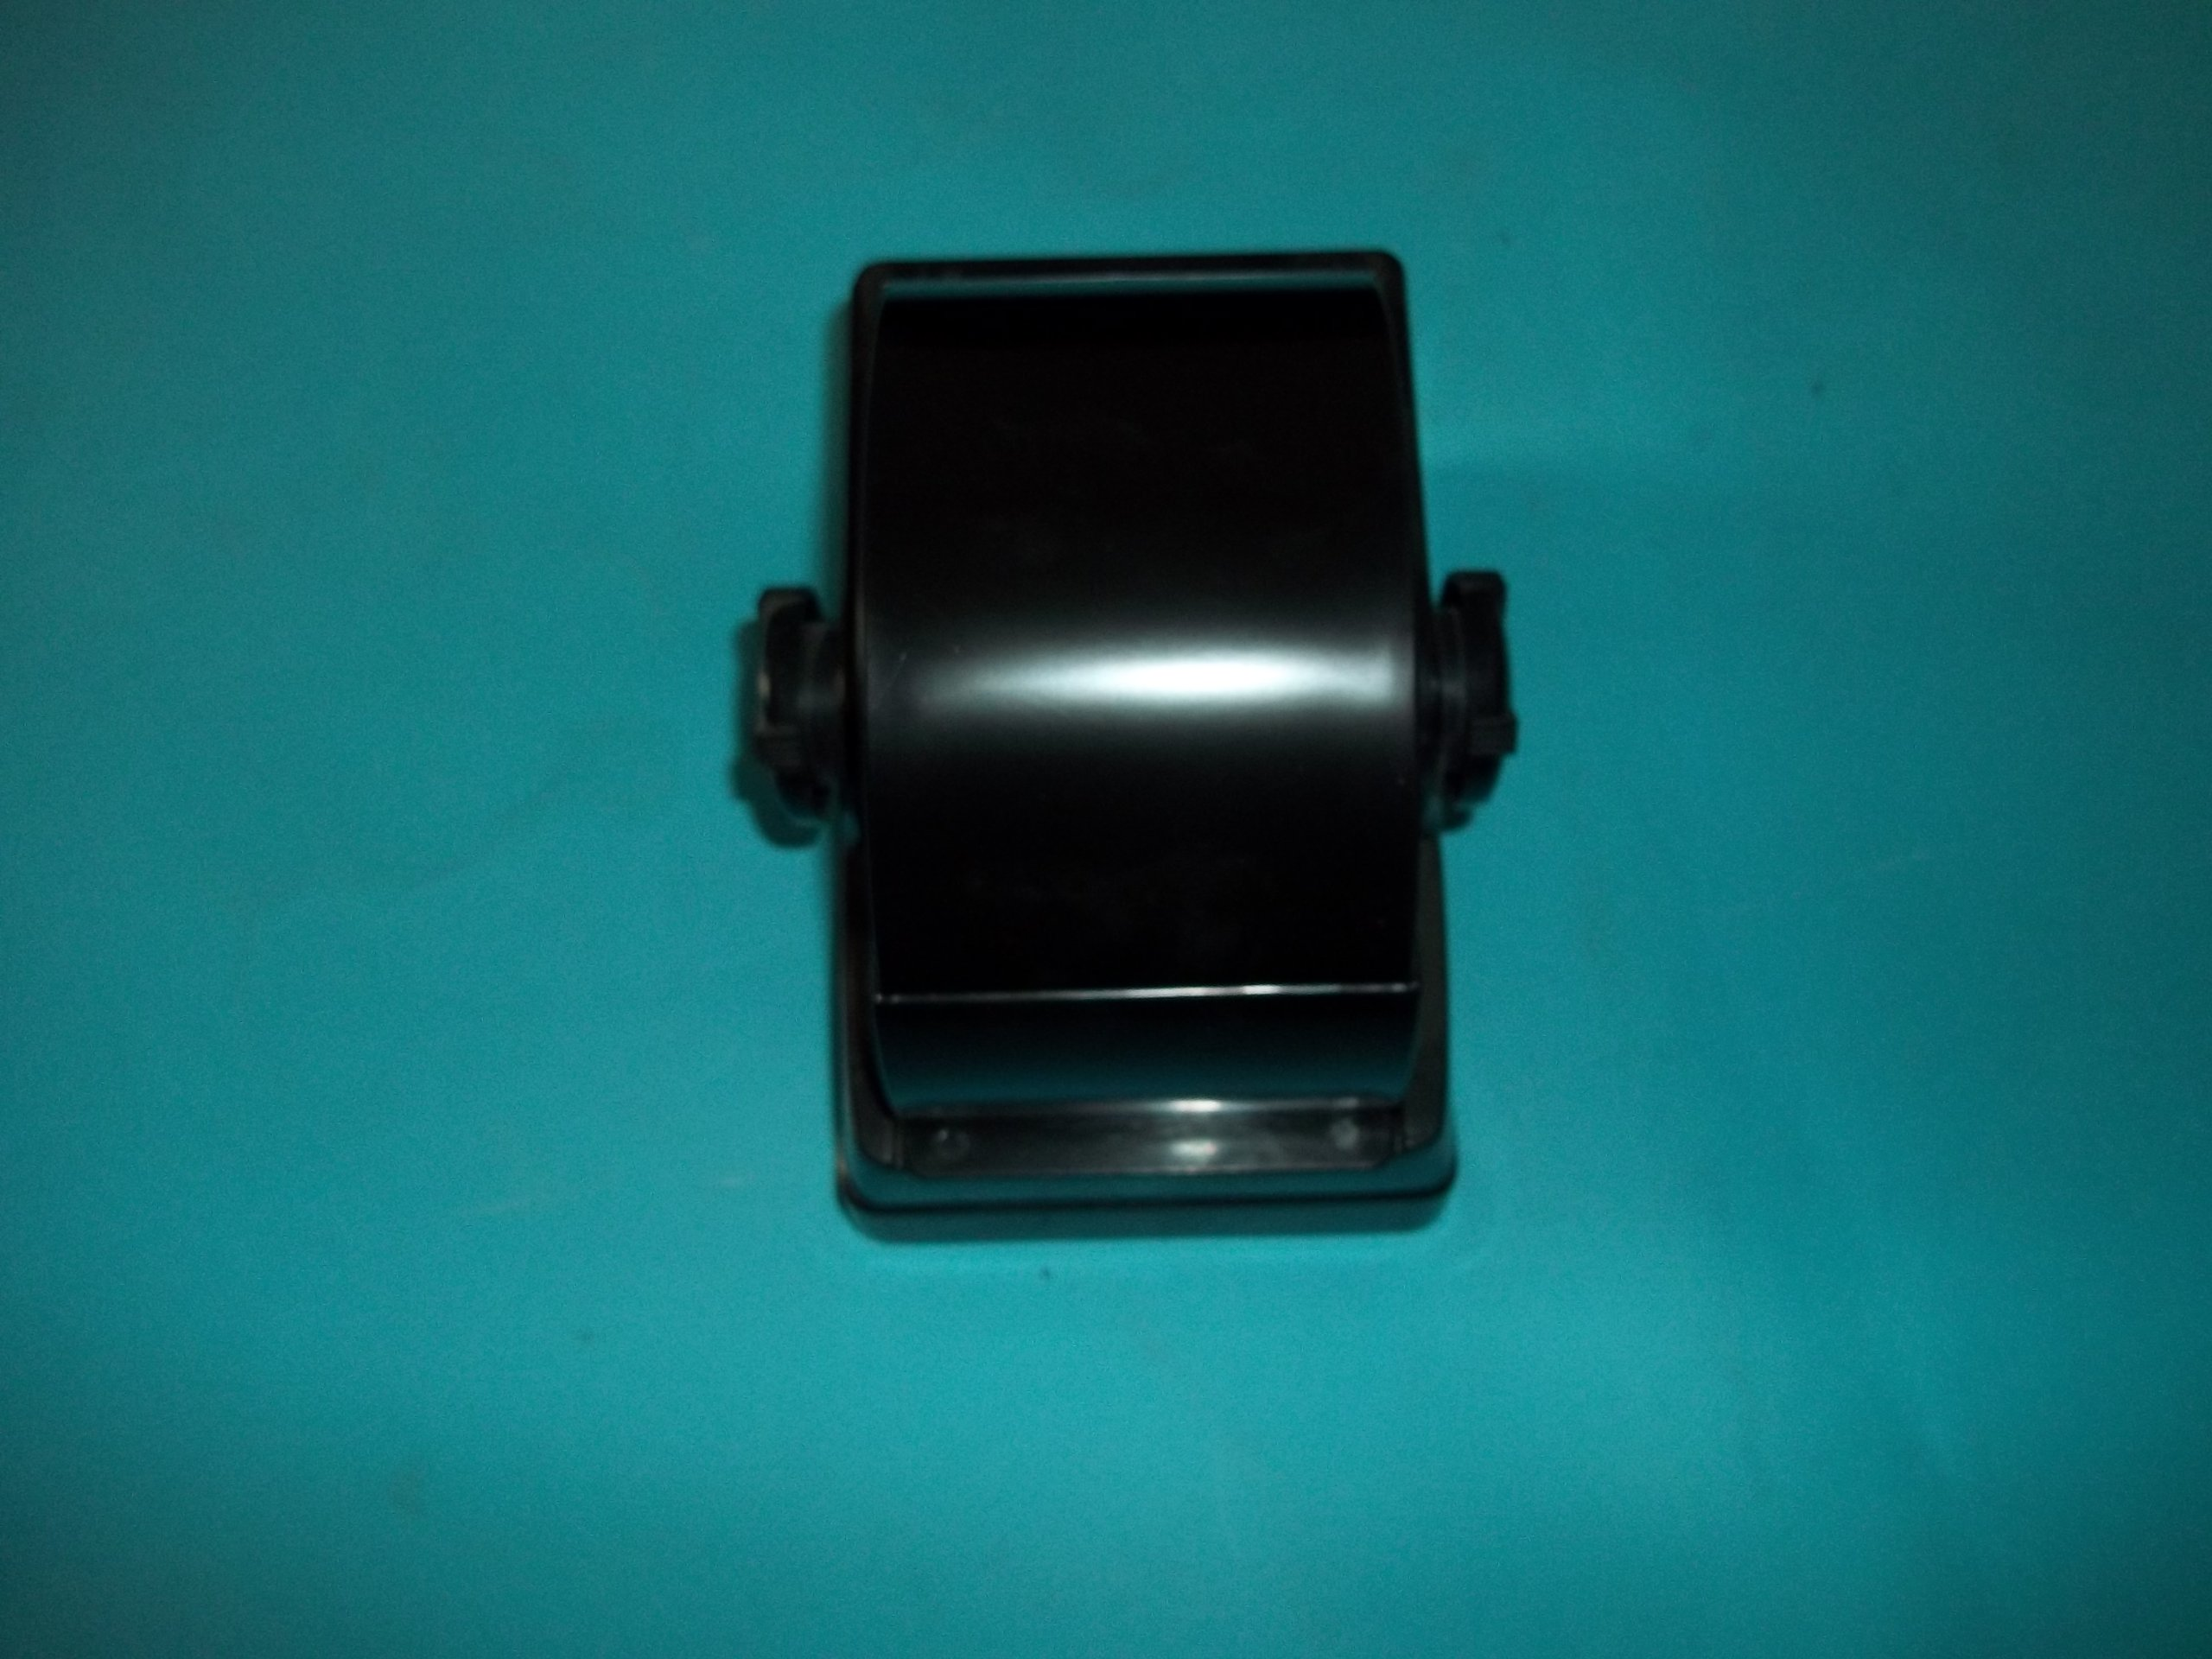 Rolodex R-202 500 Card Rotary File With 500 Cards 1 3/4'' x 3 1/4''